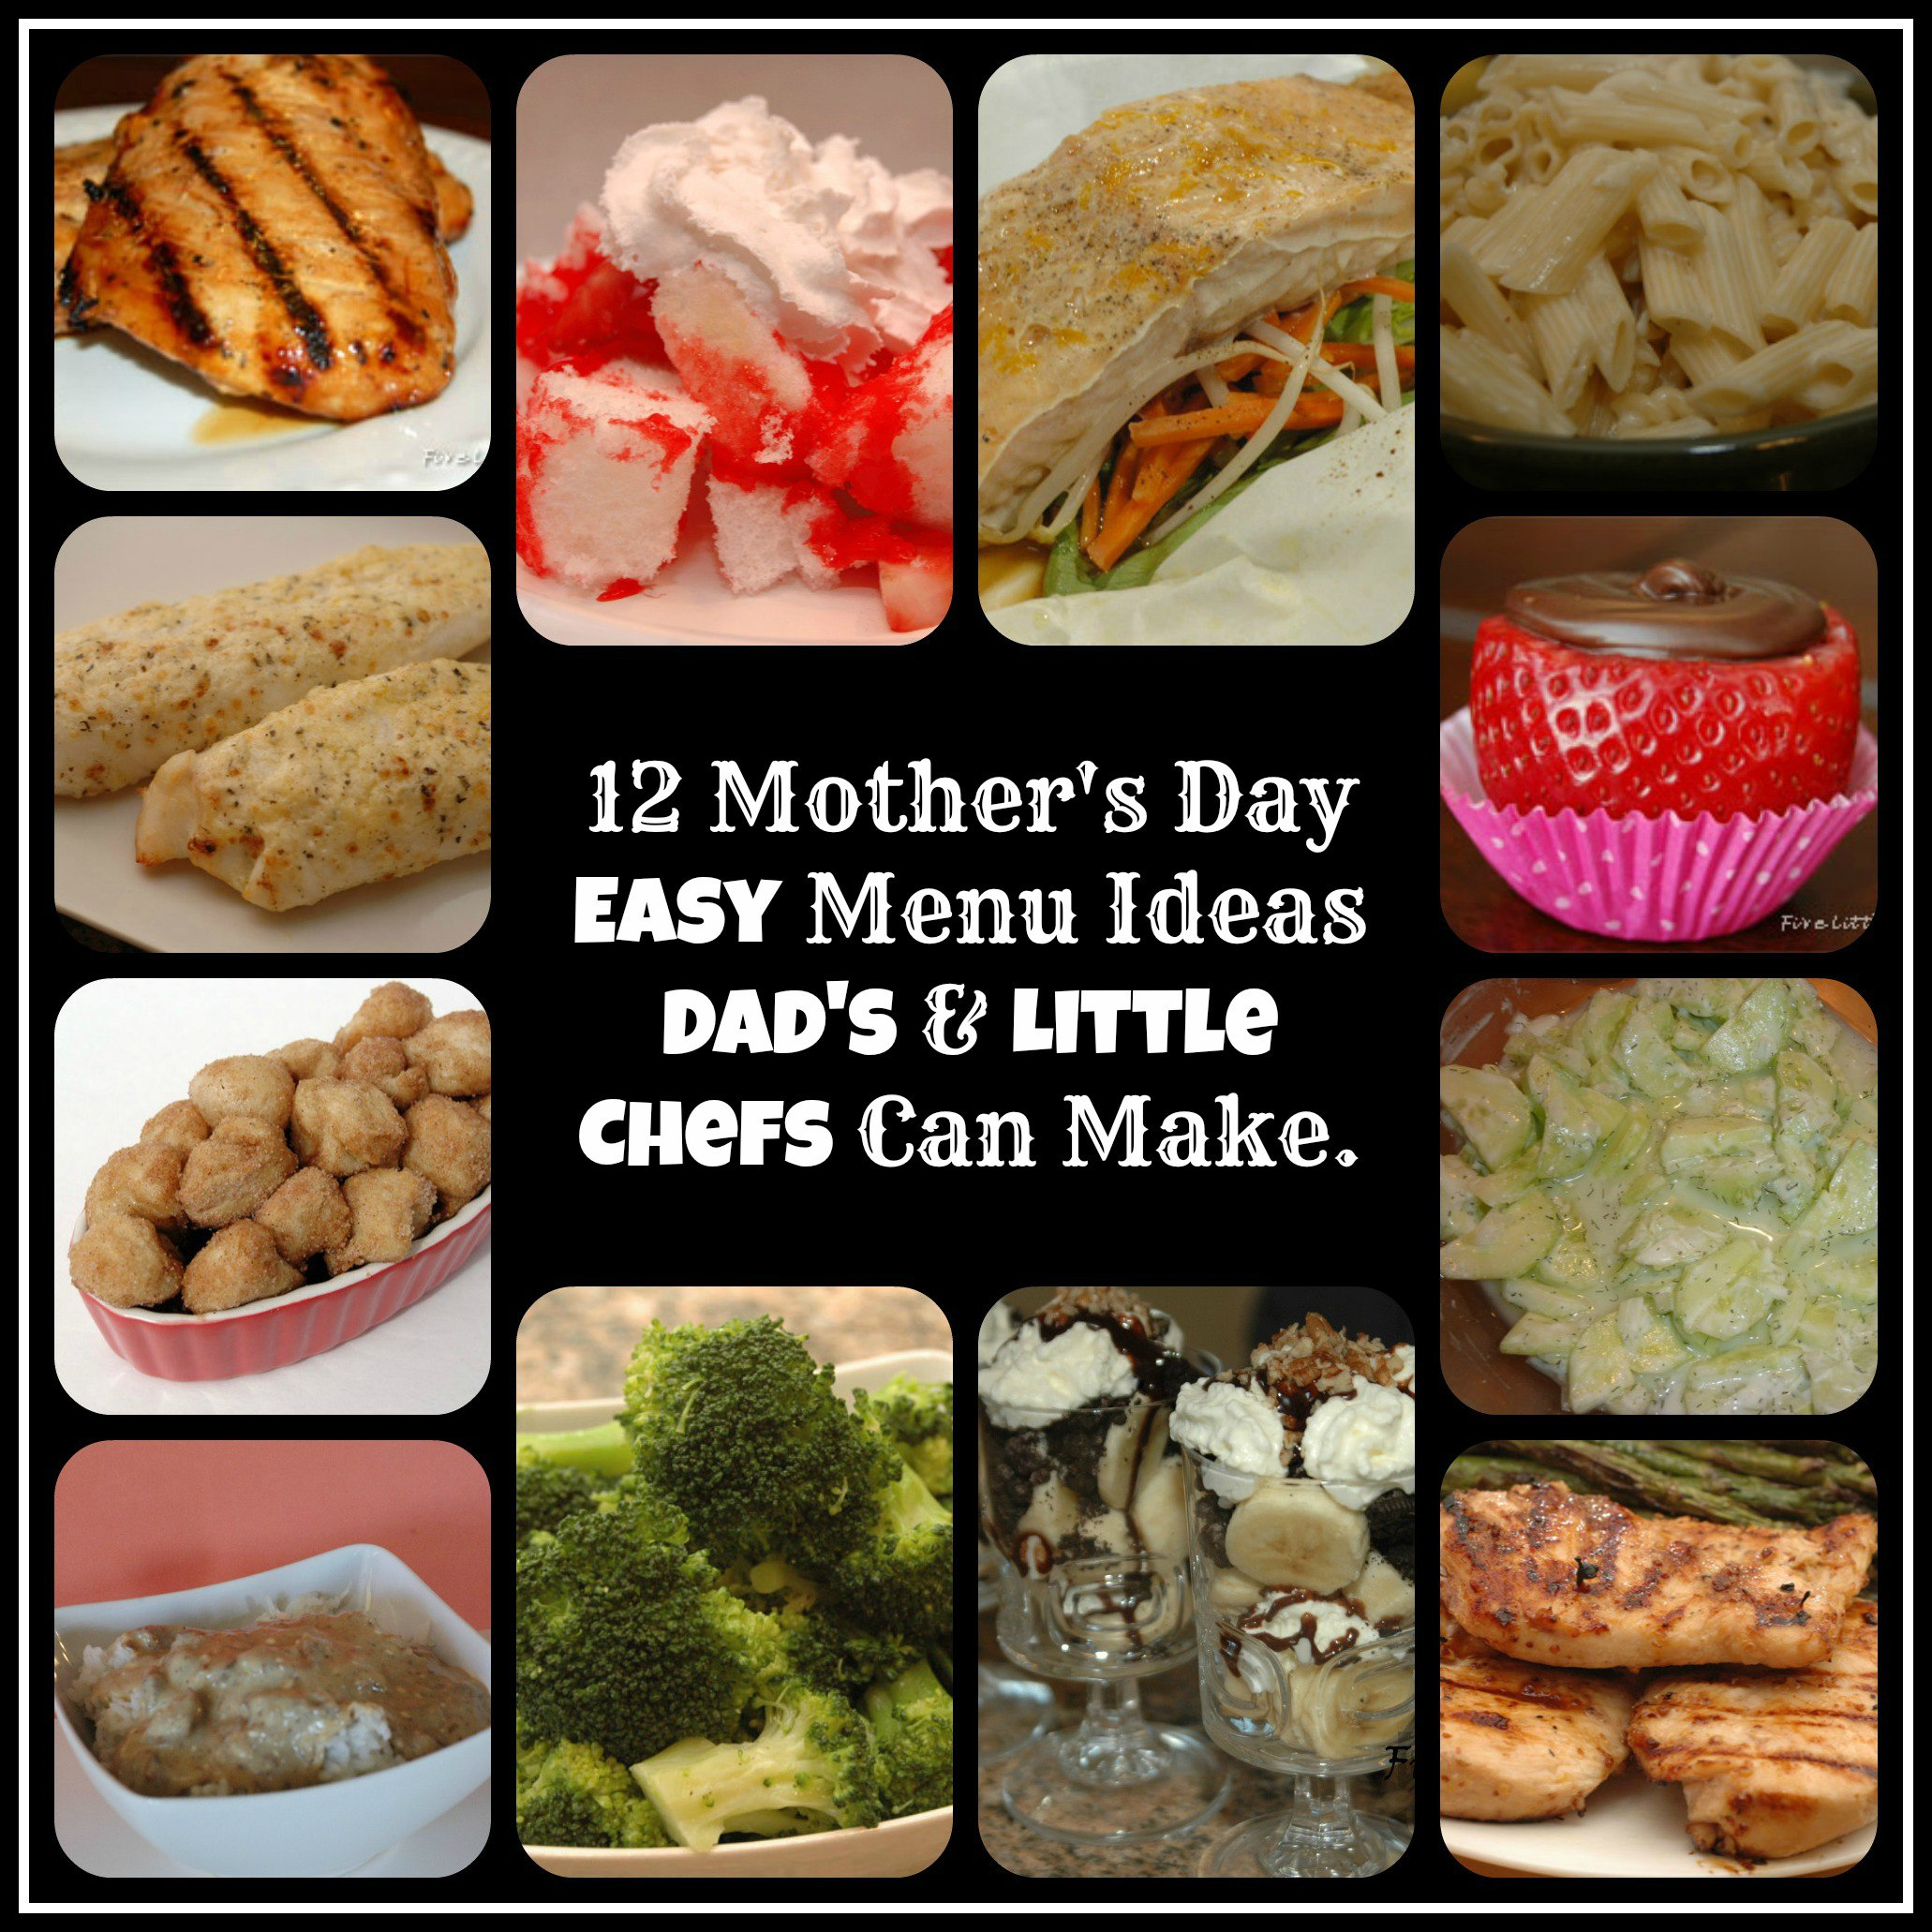 12 Mother's Day Menu Ideas Dads and little Chefs can make from fivelittlechefs.com